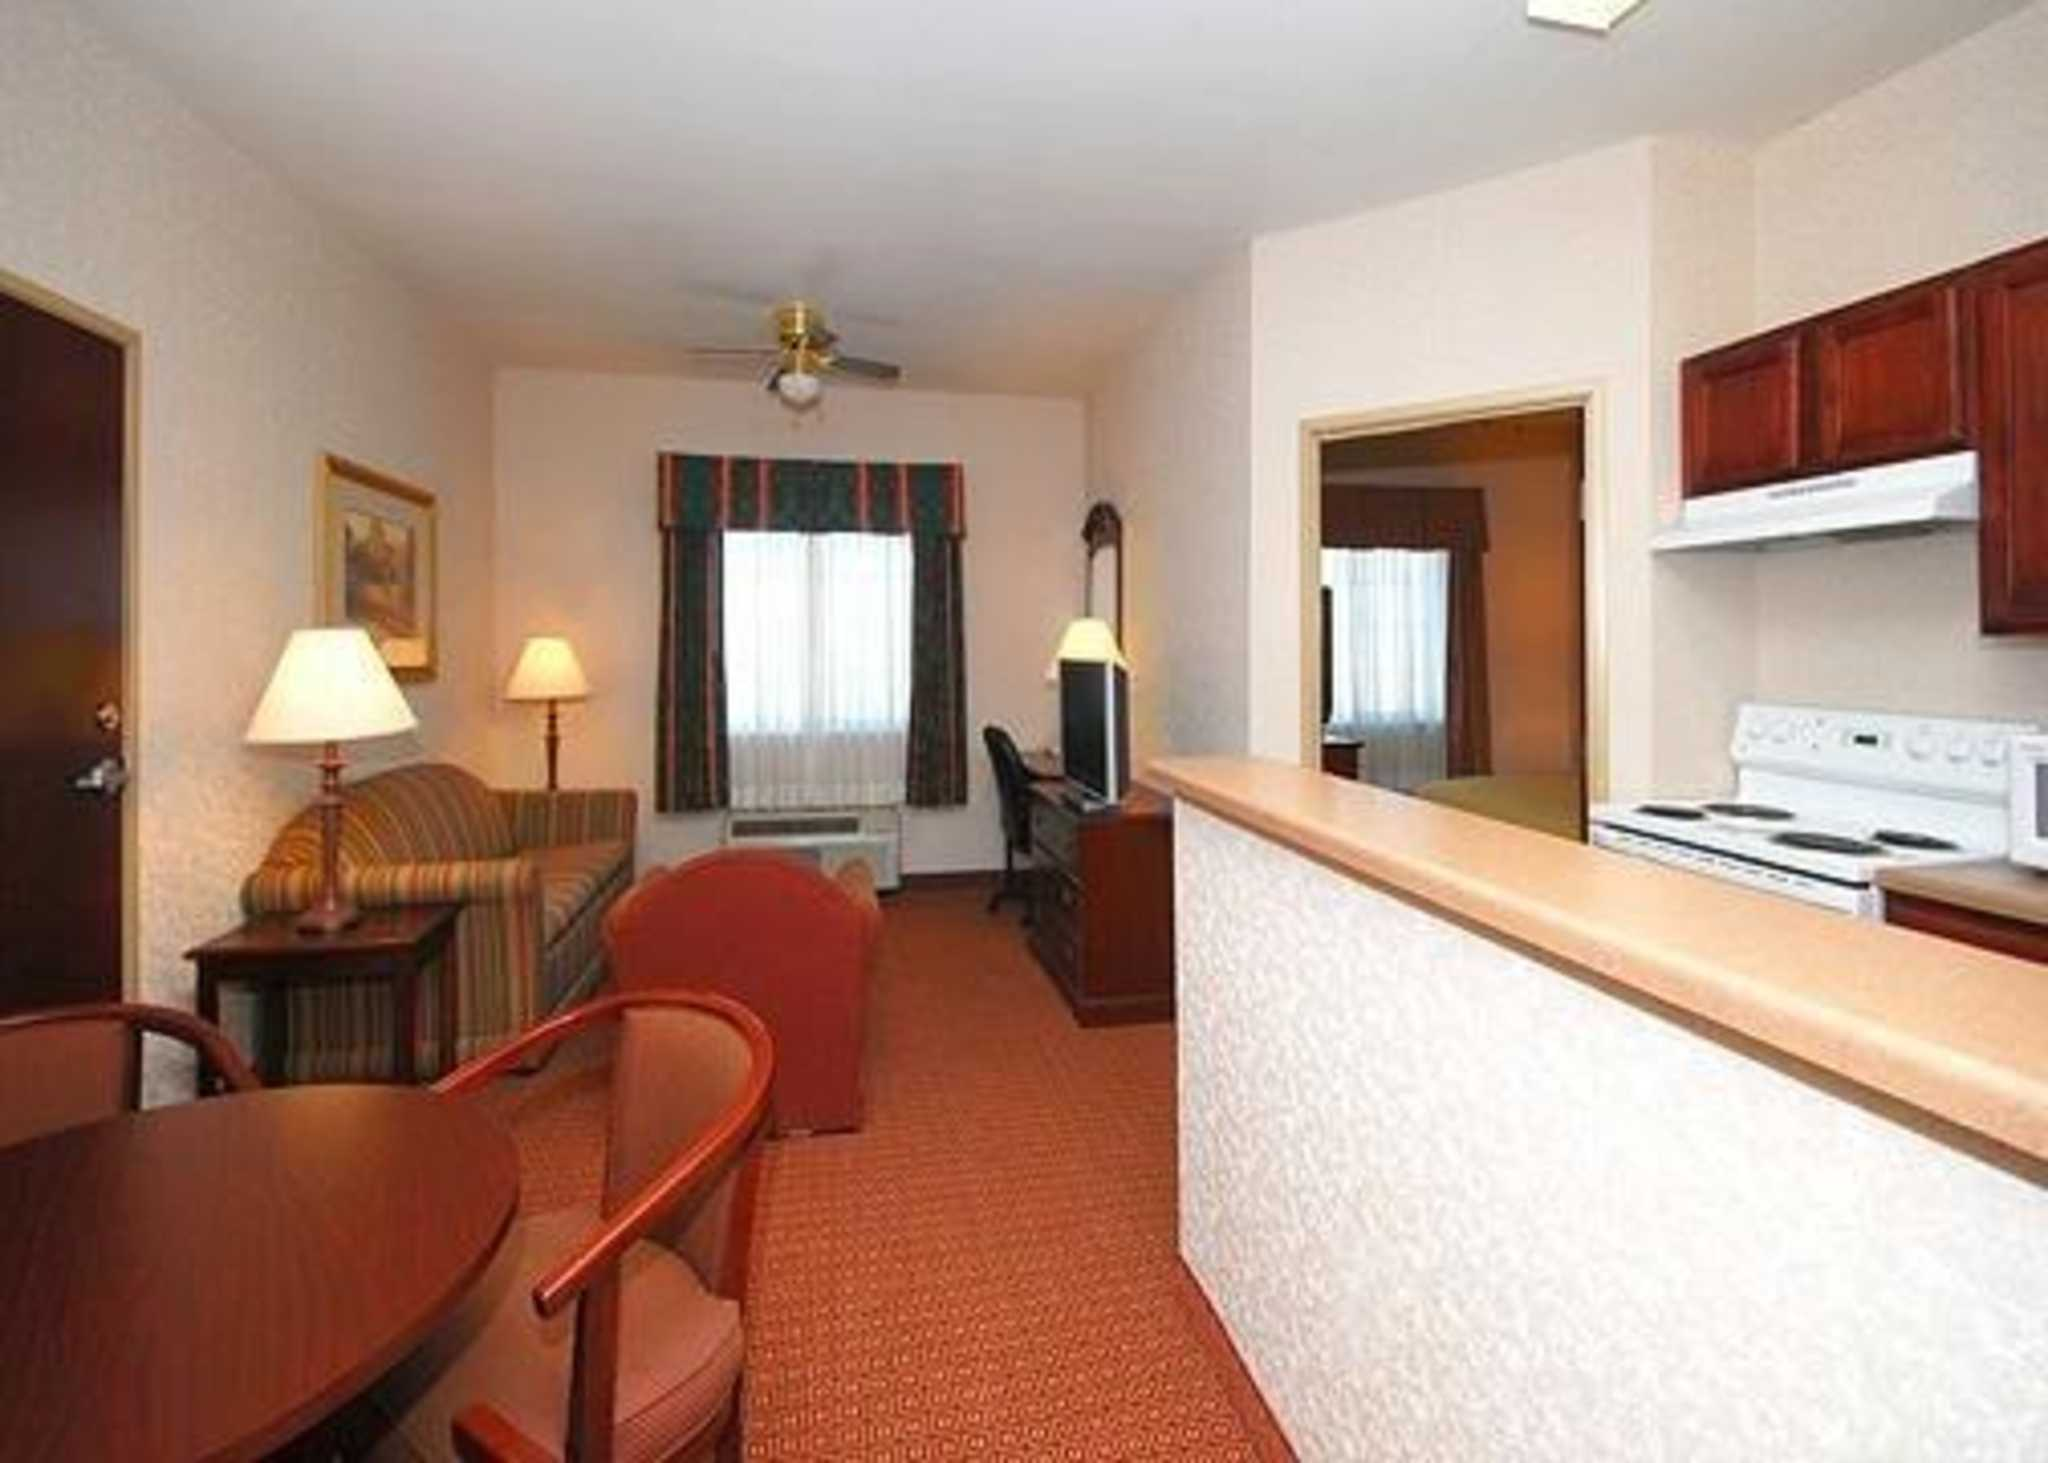 Quality Inn Amp Suites Near University At 2410 South New